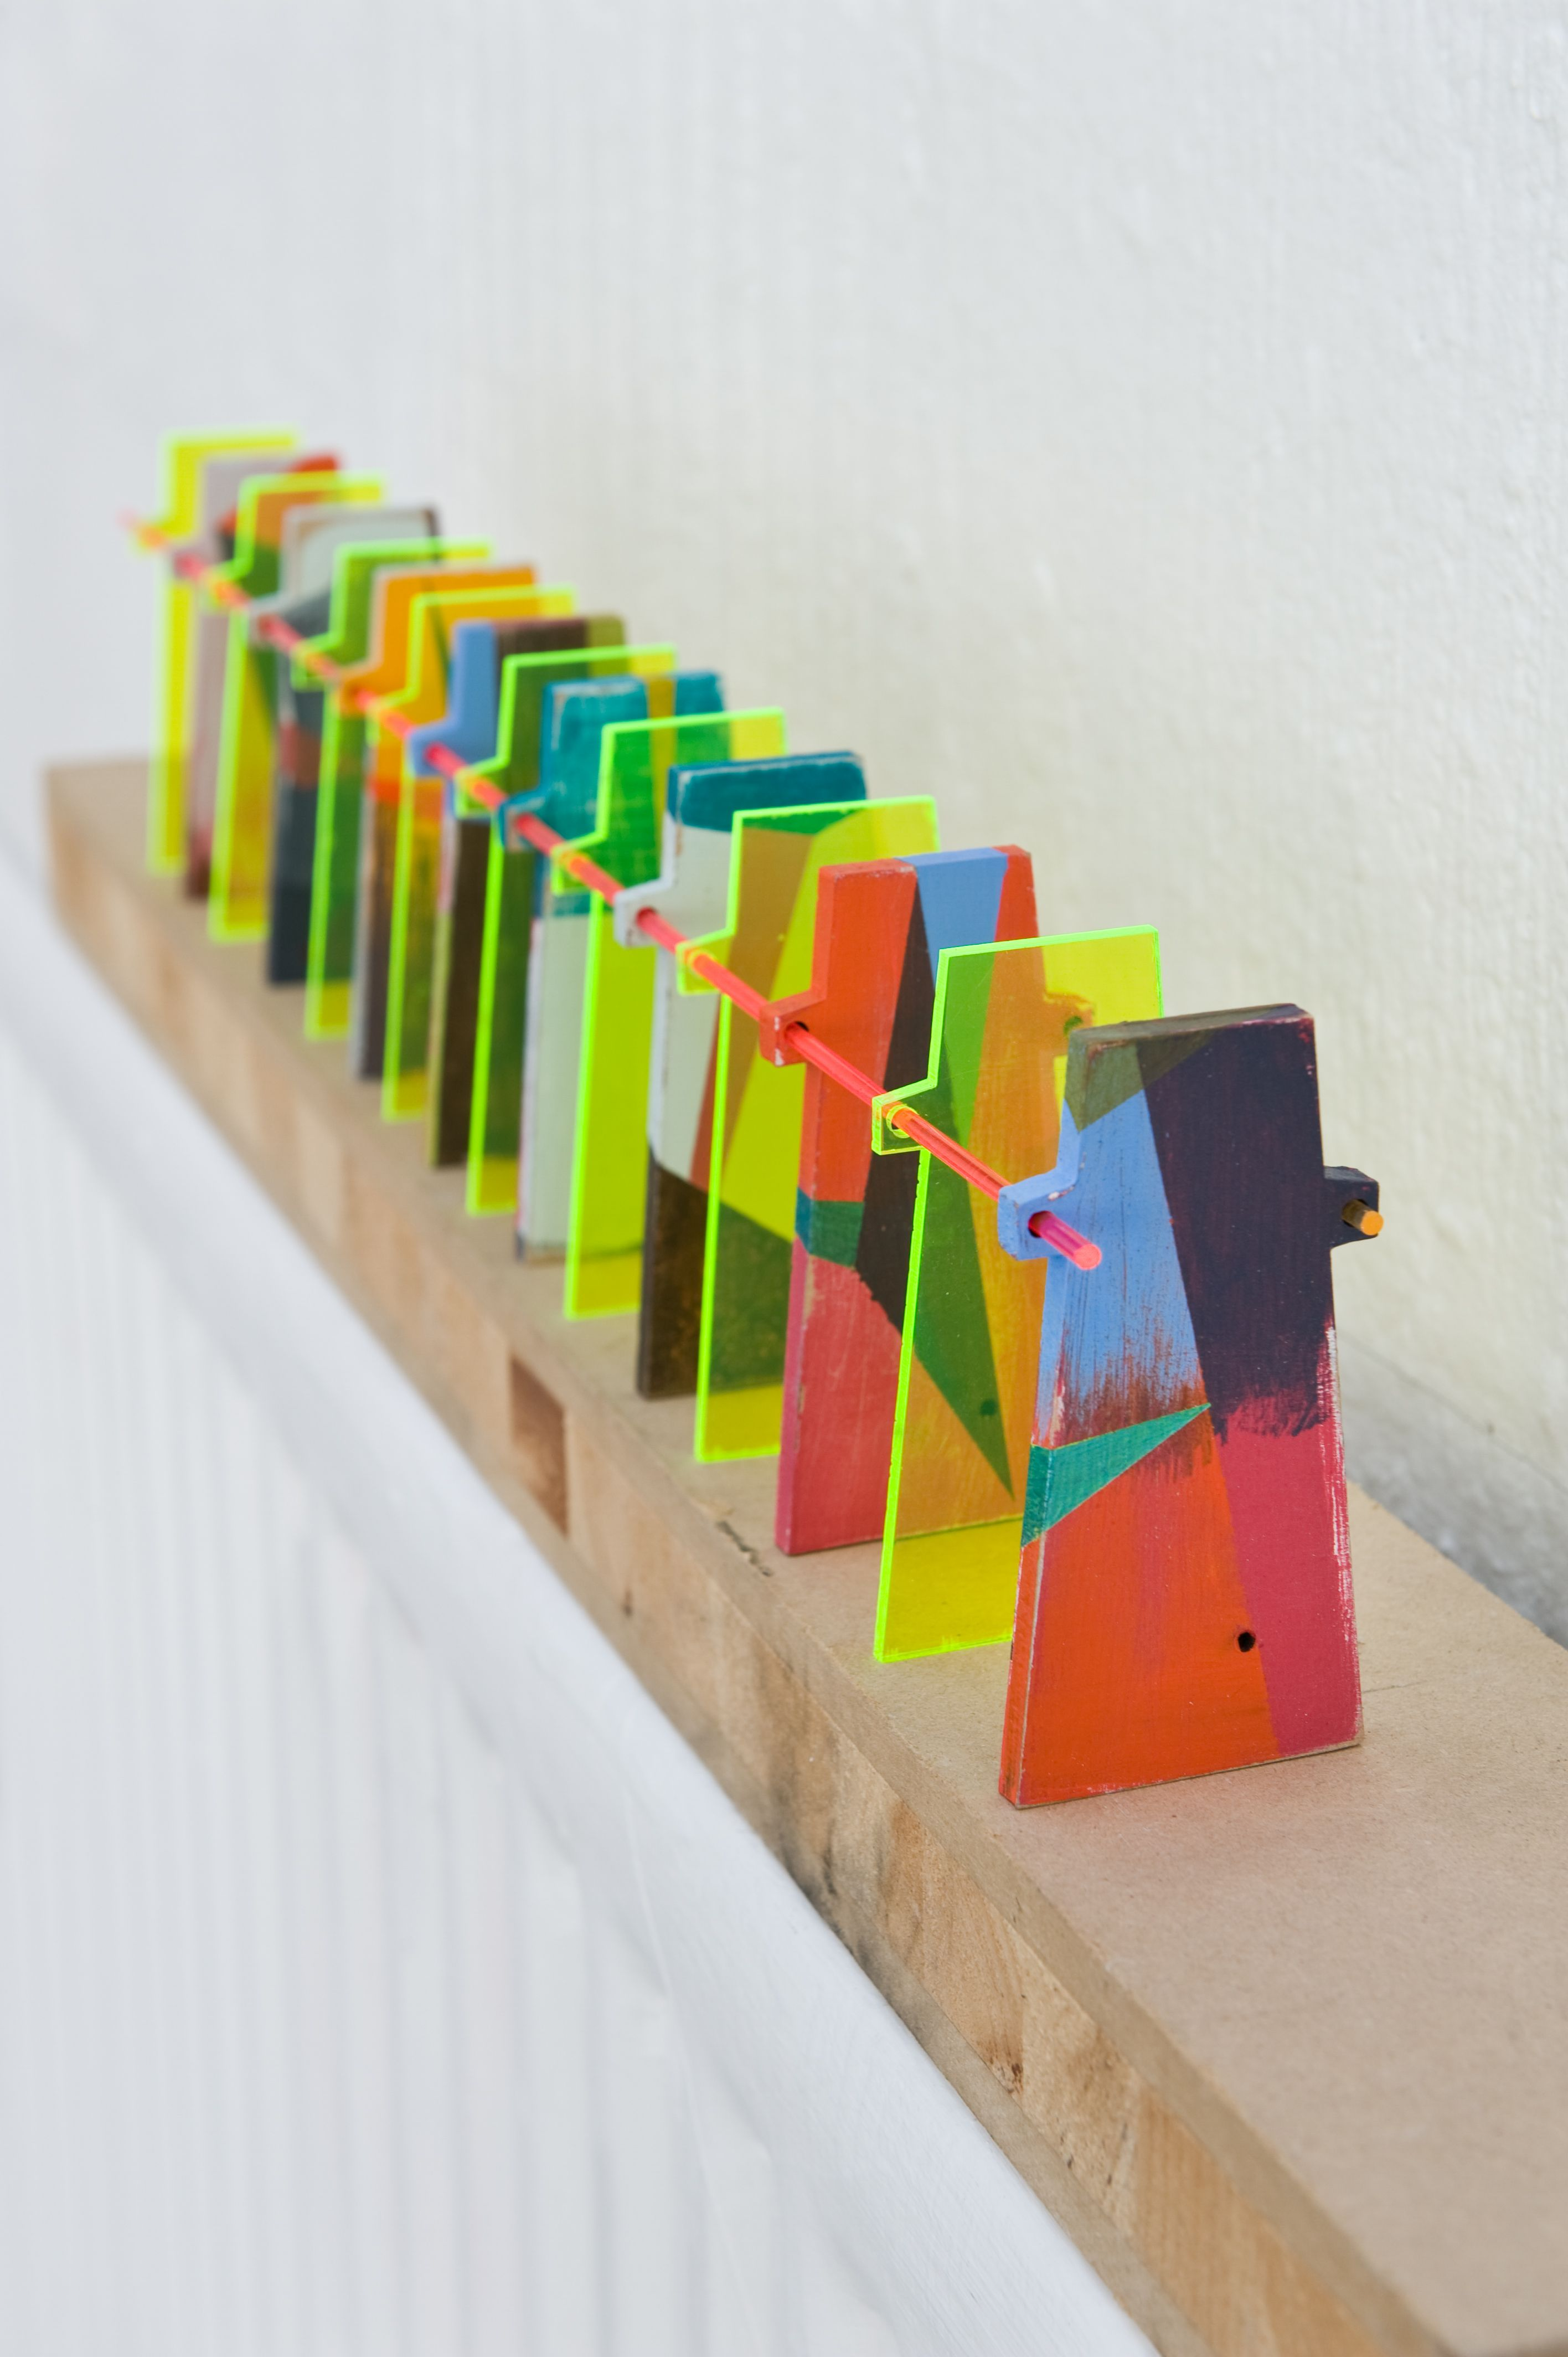 Ipoot S Army Mini Installation Acrylic On Wood And Perspex Rods Acrylic Designs Acrylic Art Acrylic Rod